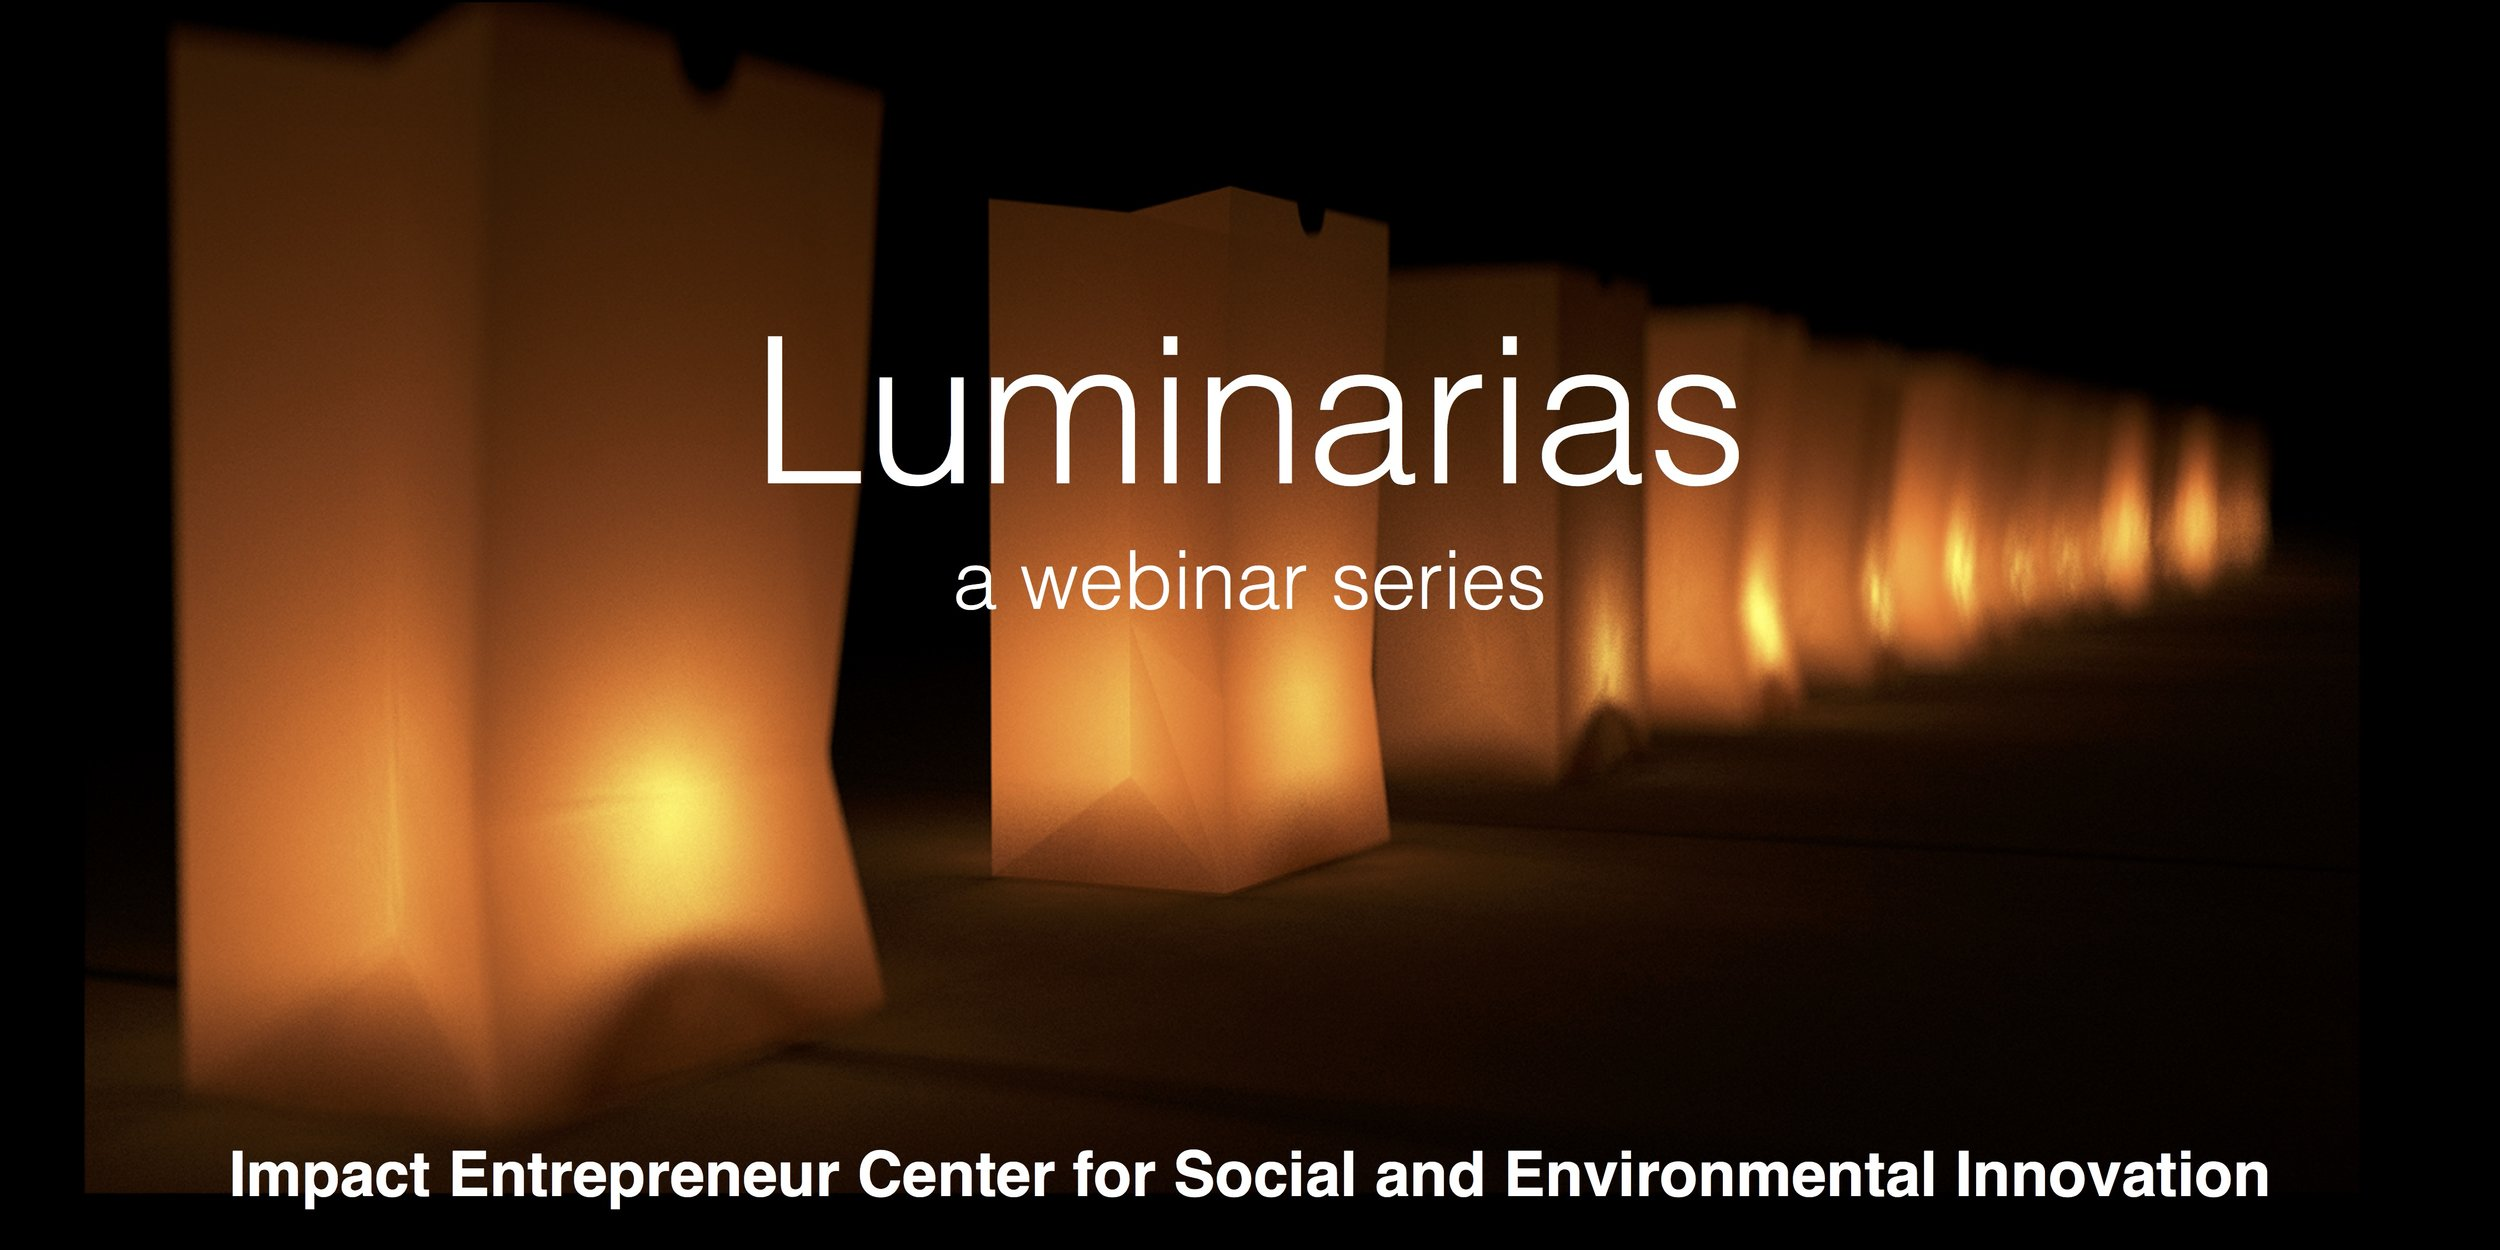 Impact Entrepreneur's Luminarias Webinar Series  features presentations and reflective conversations with the leading lights in impact investing and entrepreneurship.